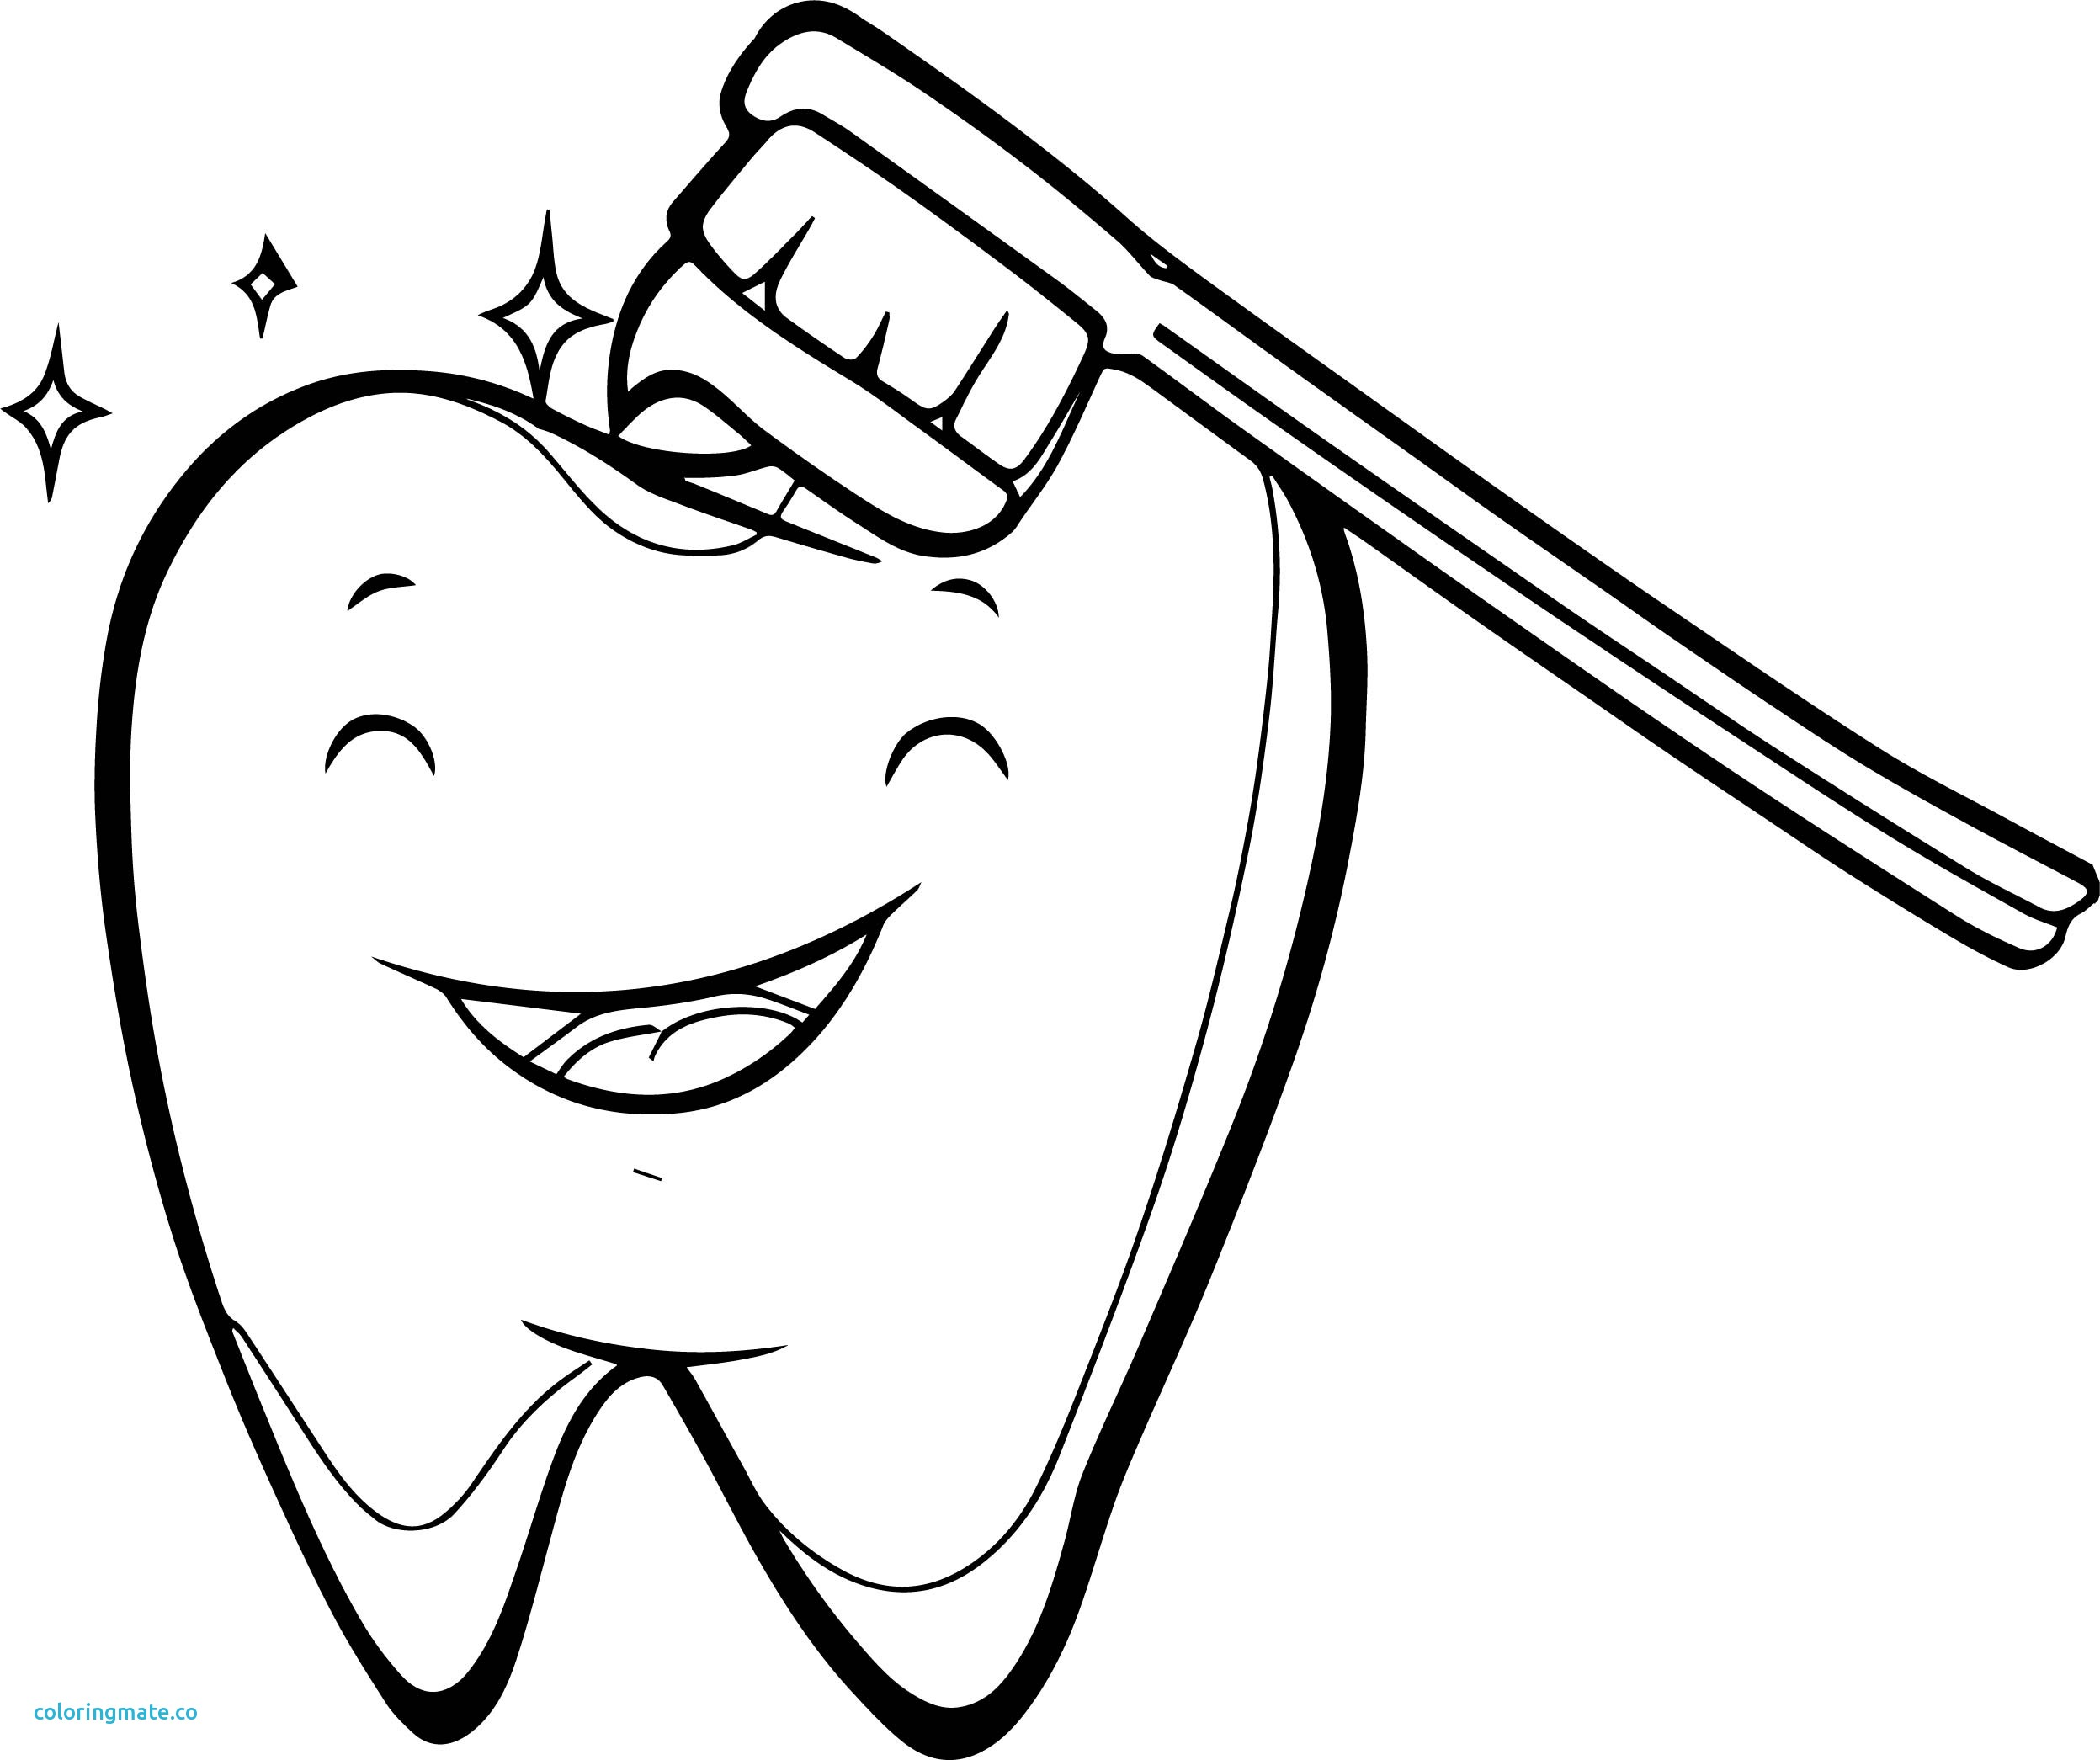 2495x2091 Coloring Halloween Dental Coloring Page Brush Your Teeth